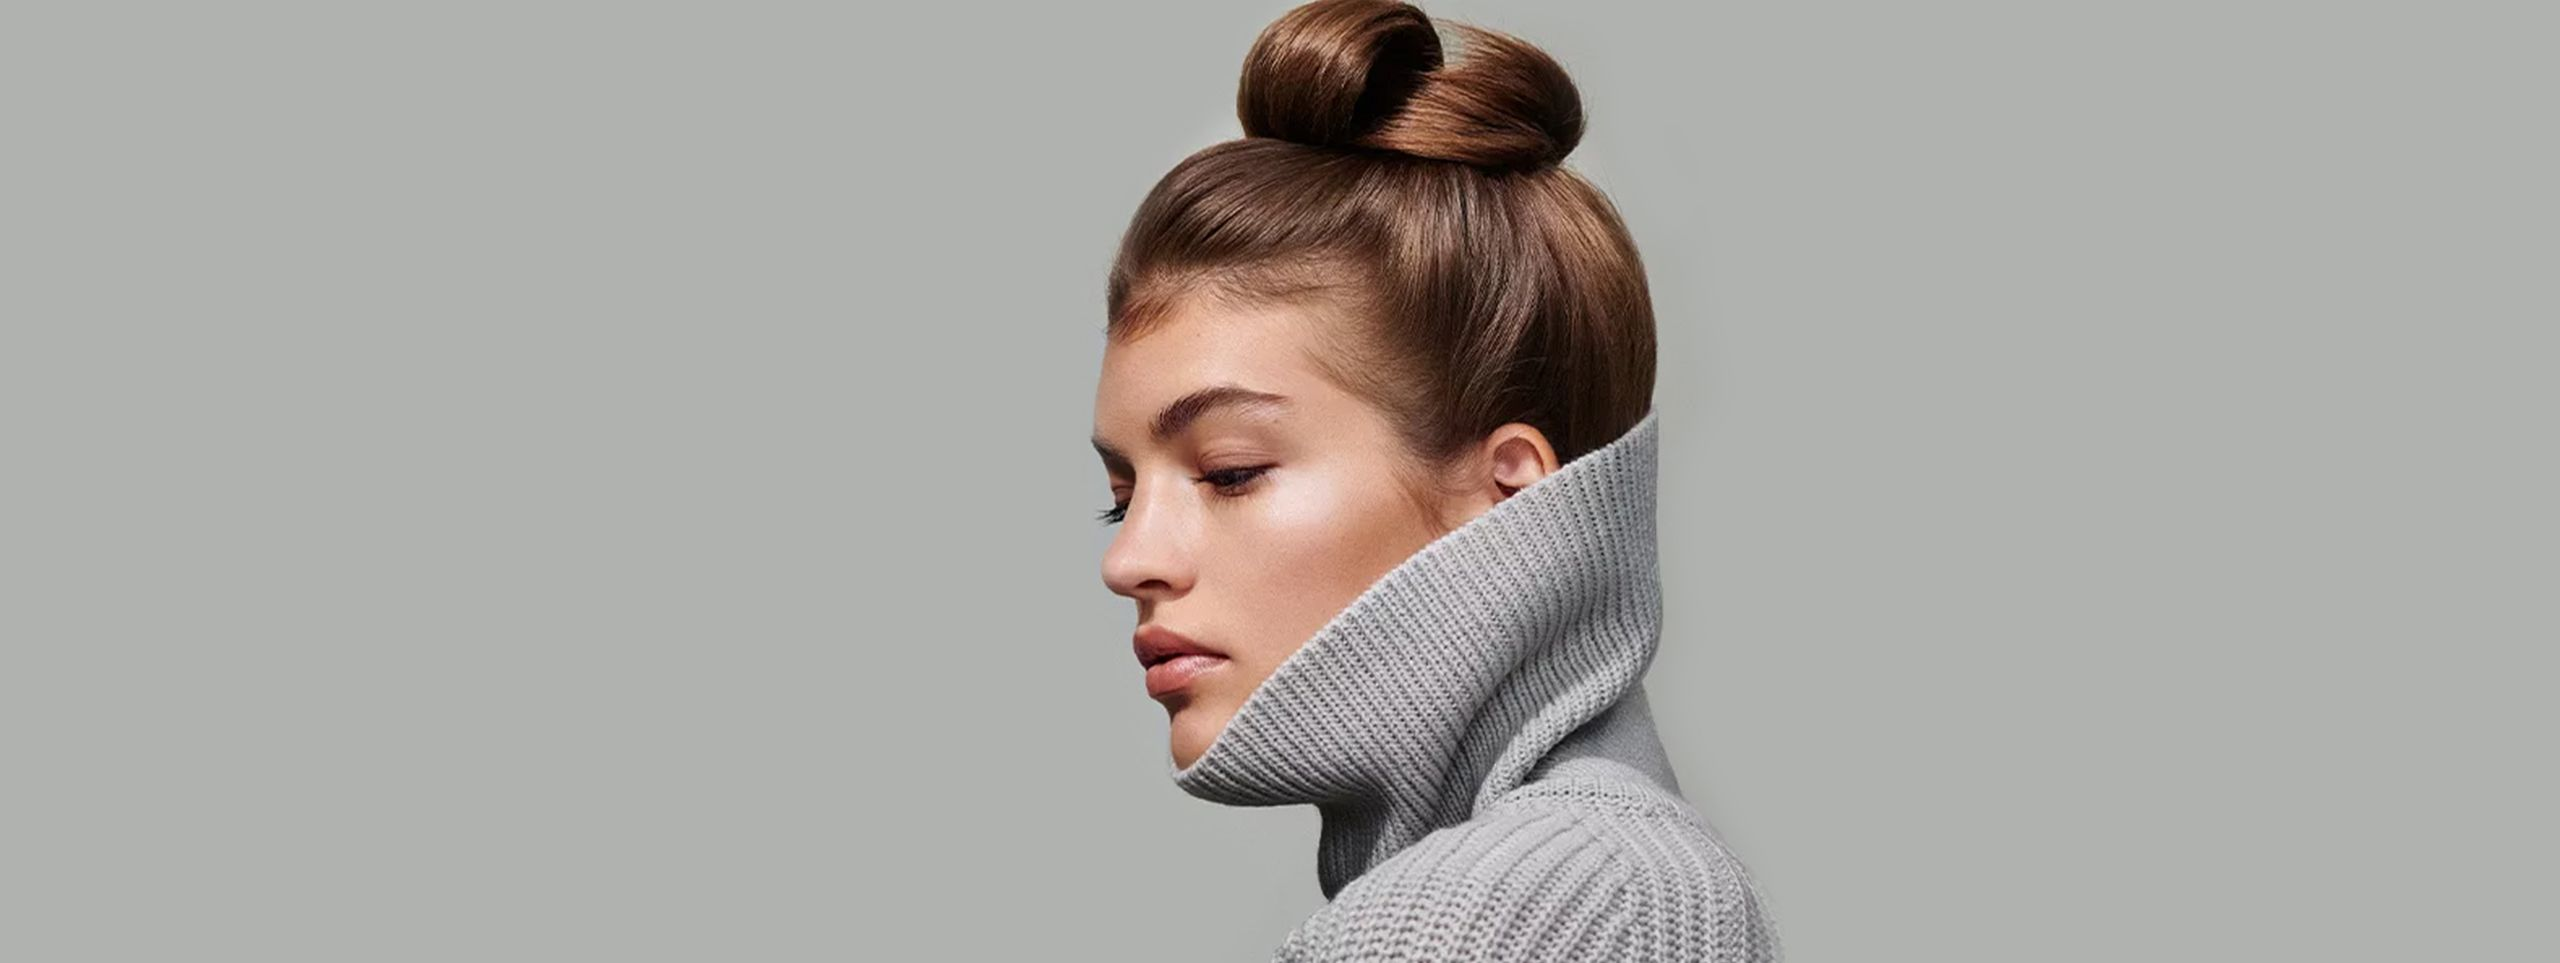 Side view of woman with hair up